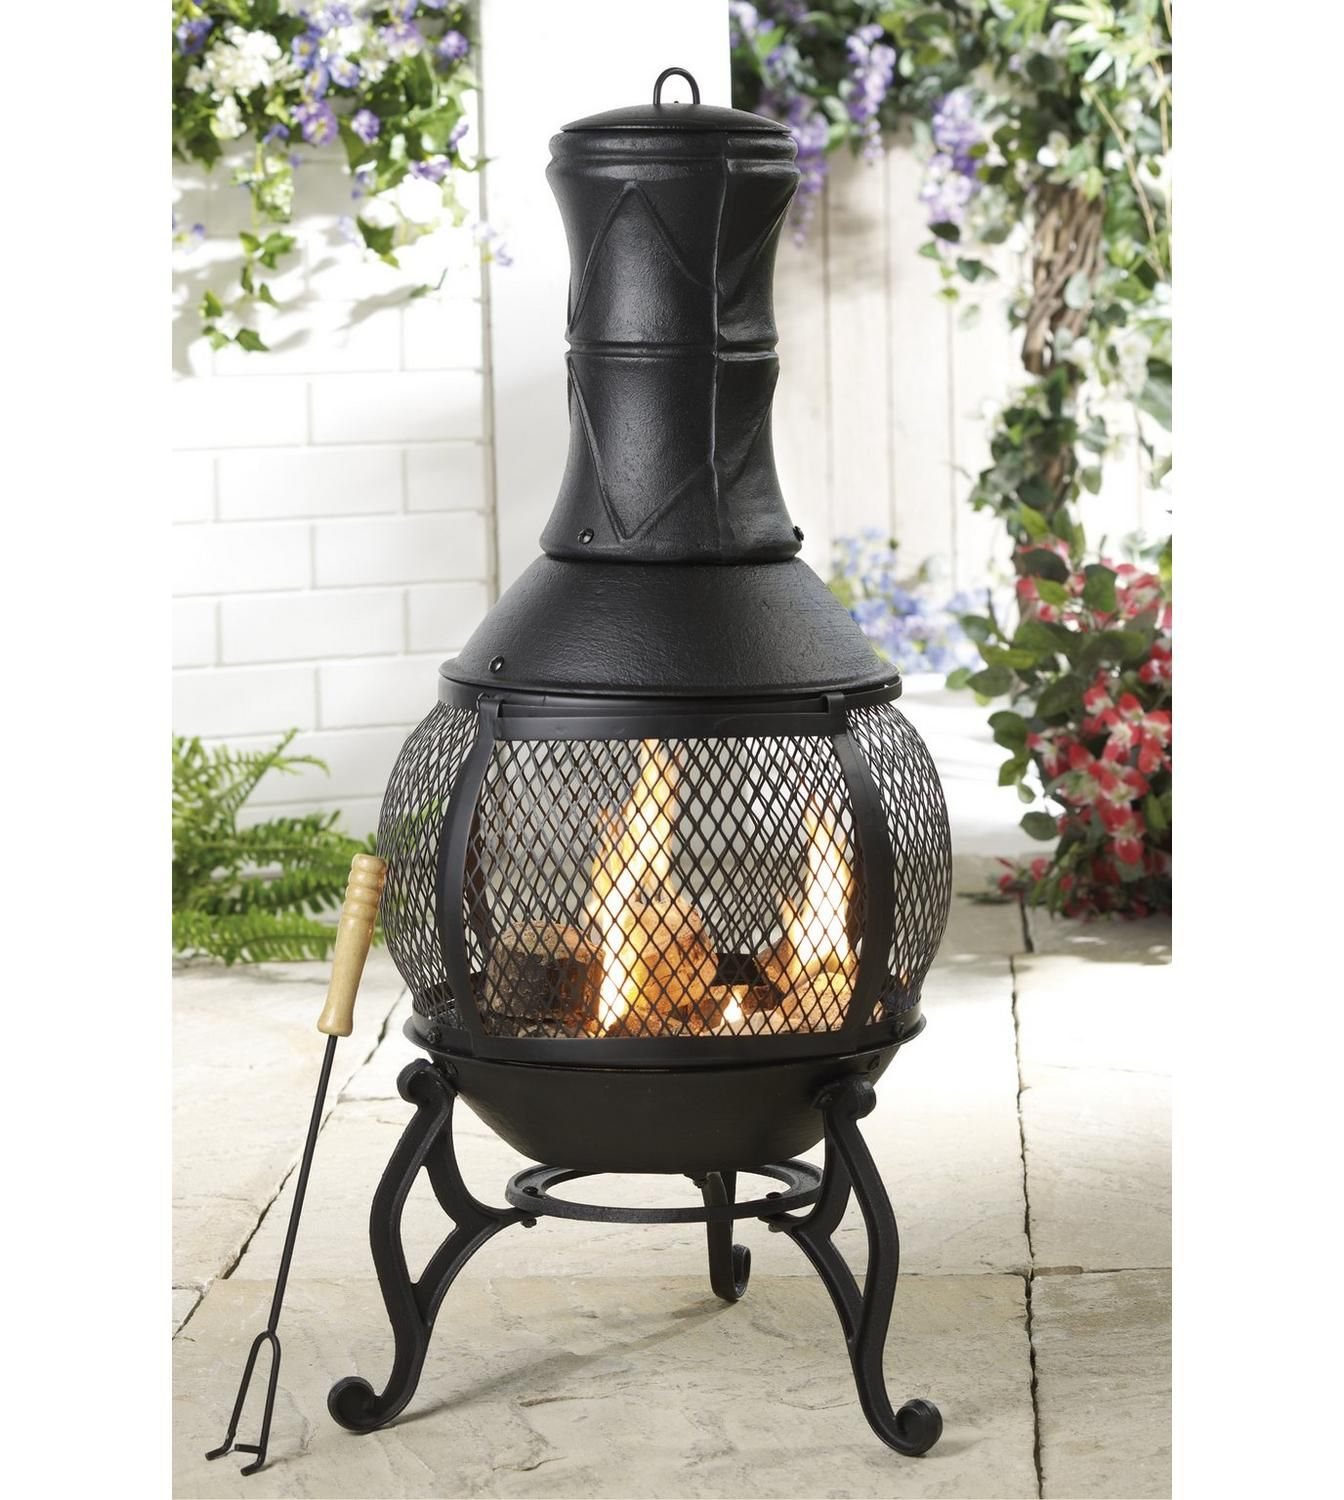 Superior Image For Cast Iron Chiminea/Fire Pit From Studio